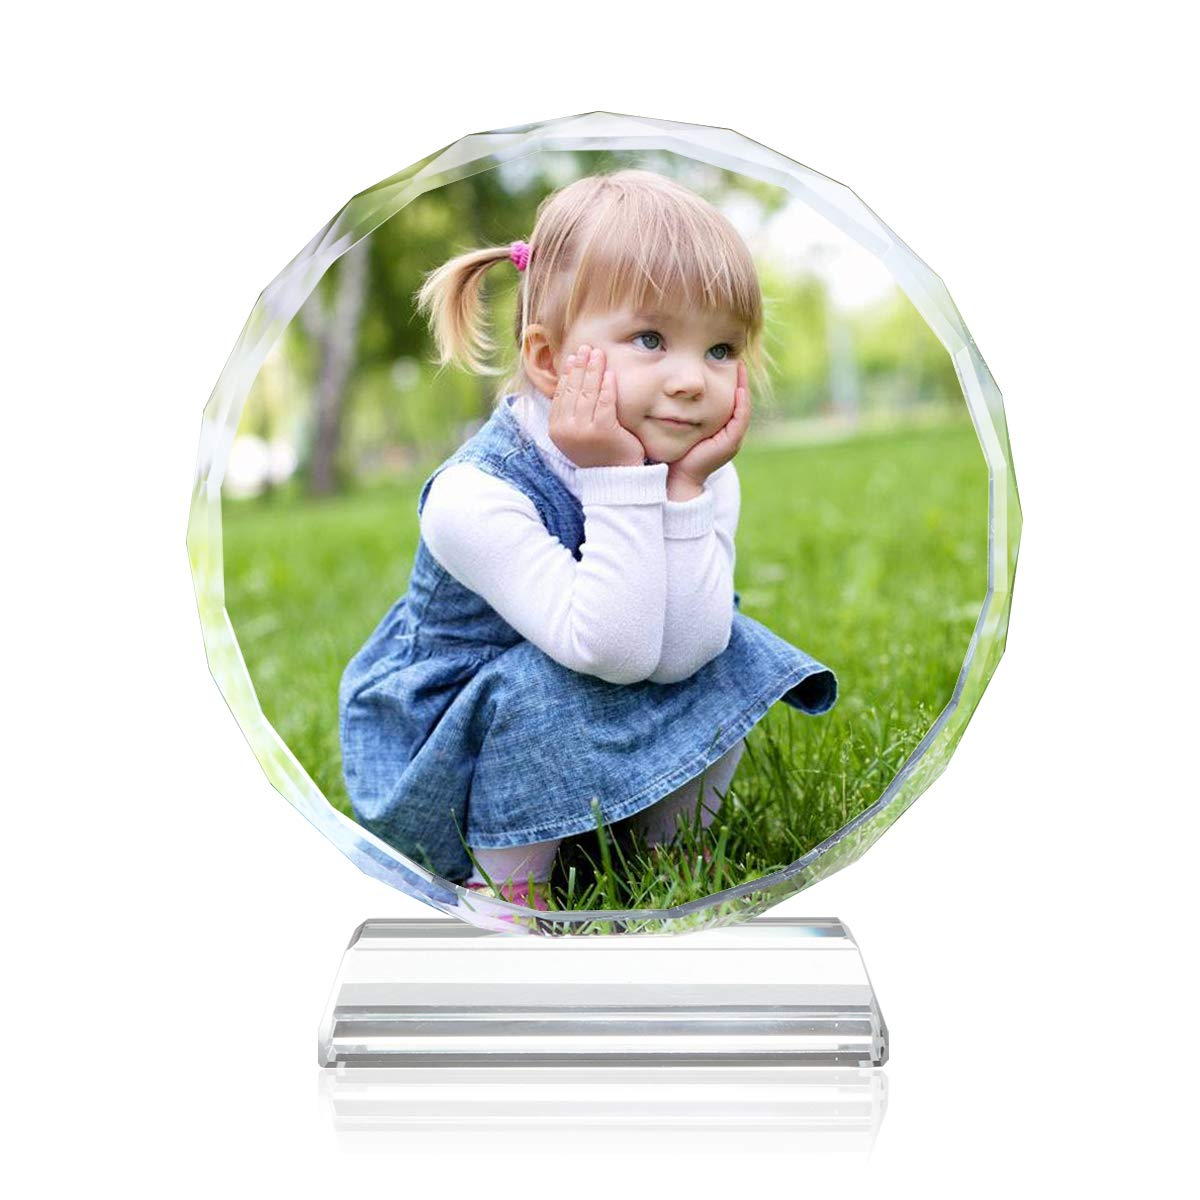 YWHL Personalized Round Glass Picture Frame, Customize Photo Frint Crystal Frame for Kids, Memorial Pictures in Glass Home Decor (Round)